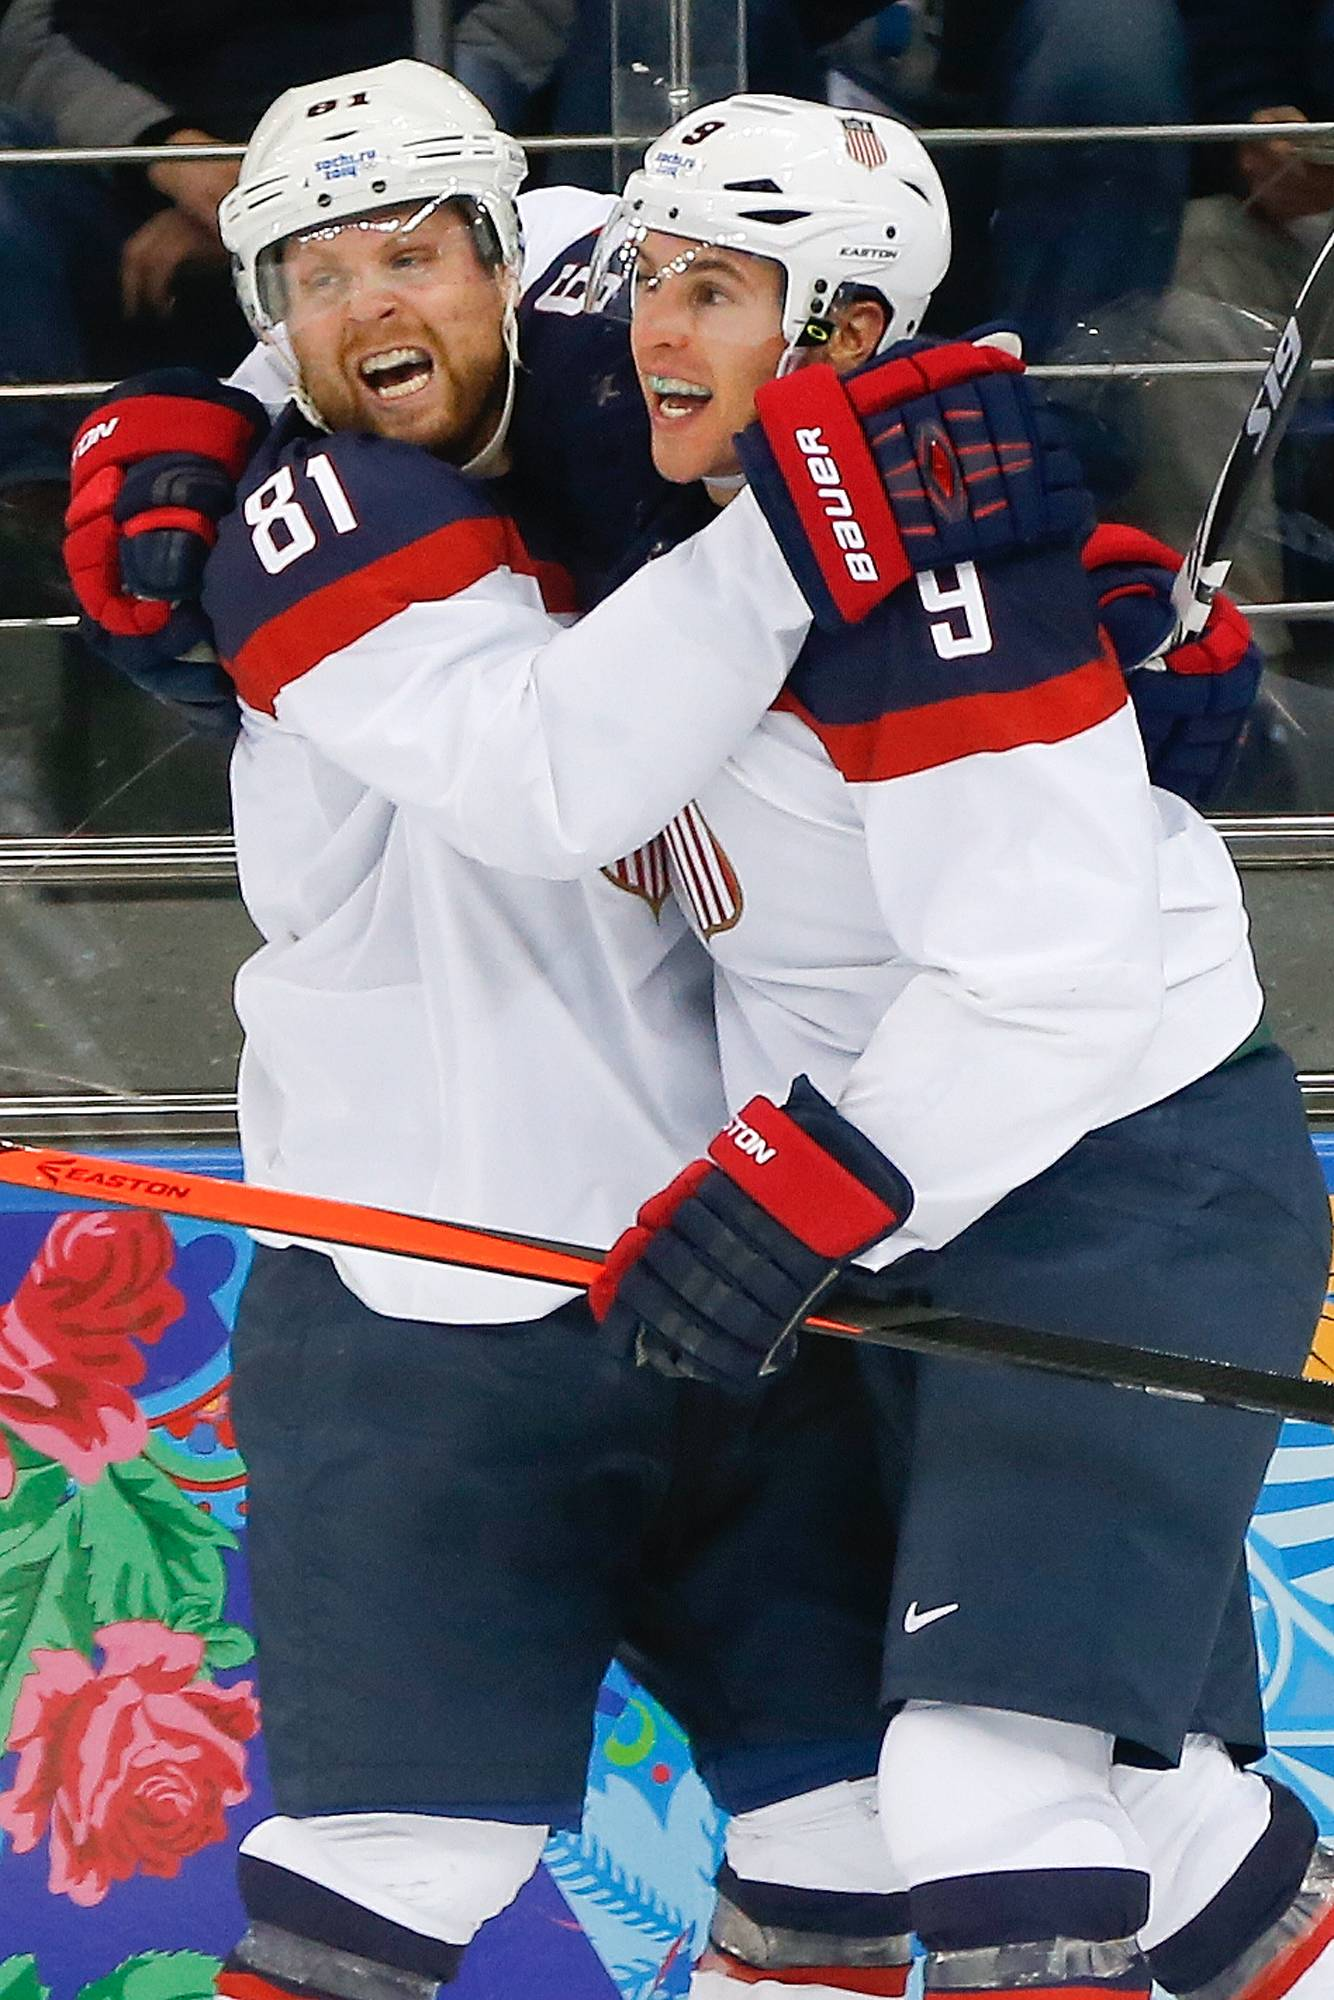 USA forward Zach Parise (9) celebrates his goal with teammate Phil Kessel (81) during the second period of men's quarterfinal hockey game against the Czech Republic.